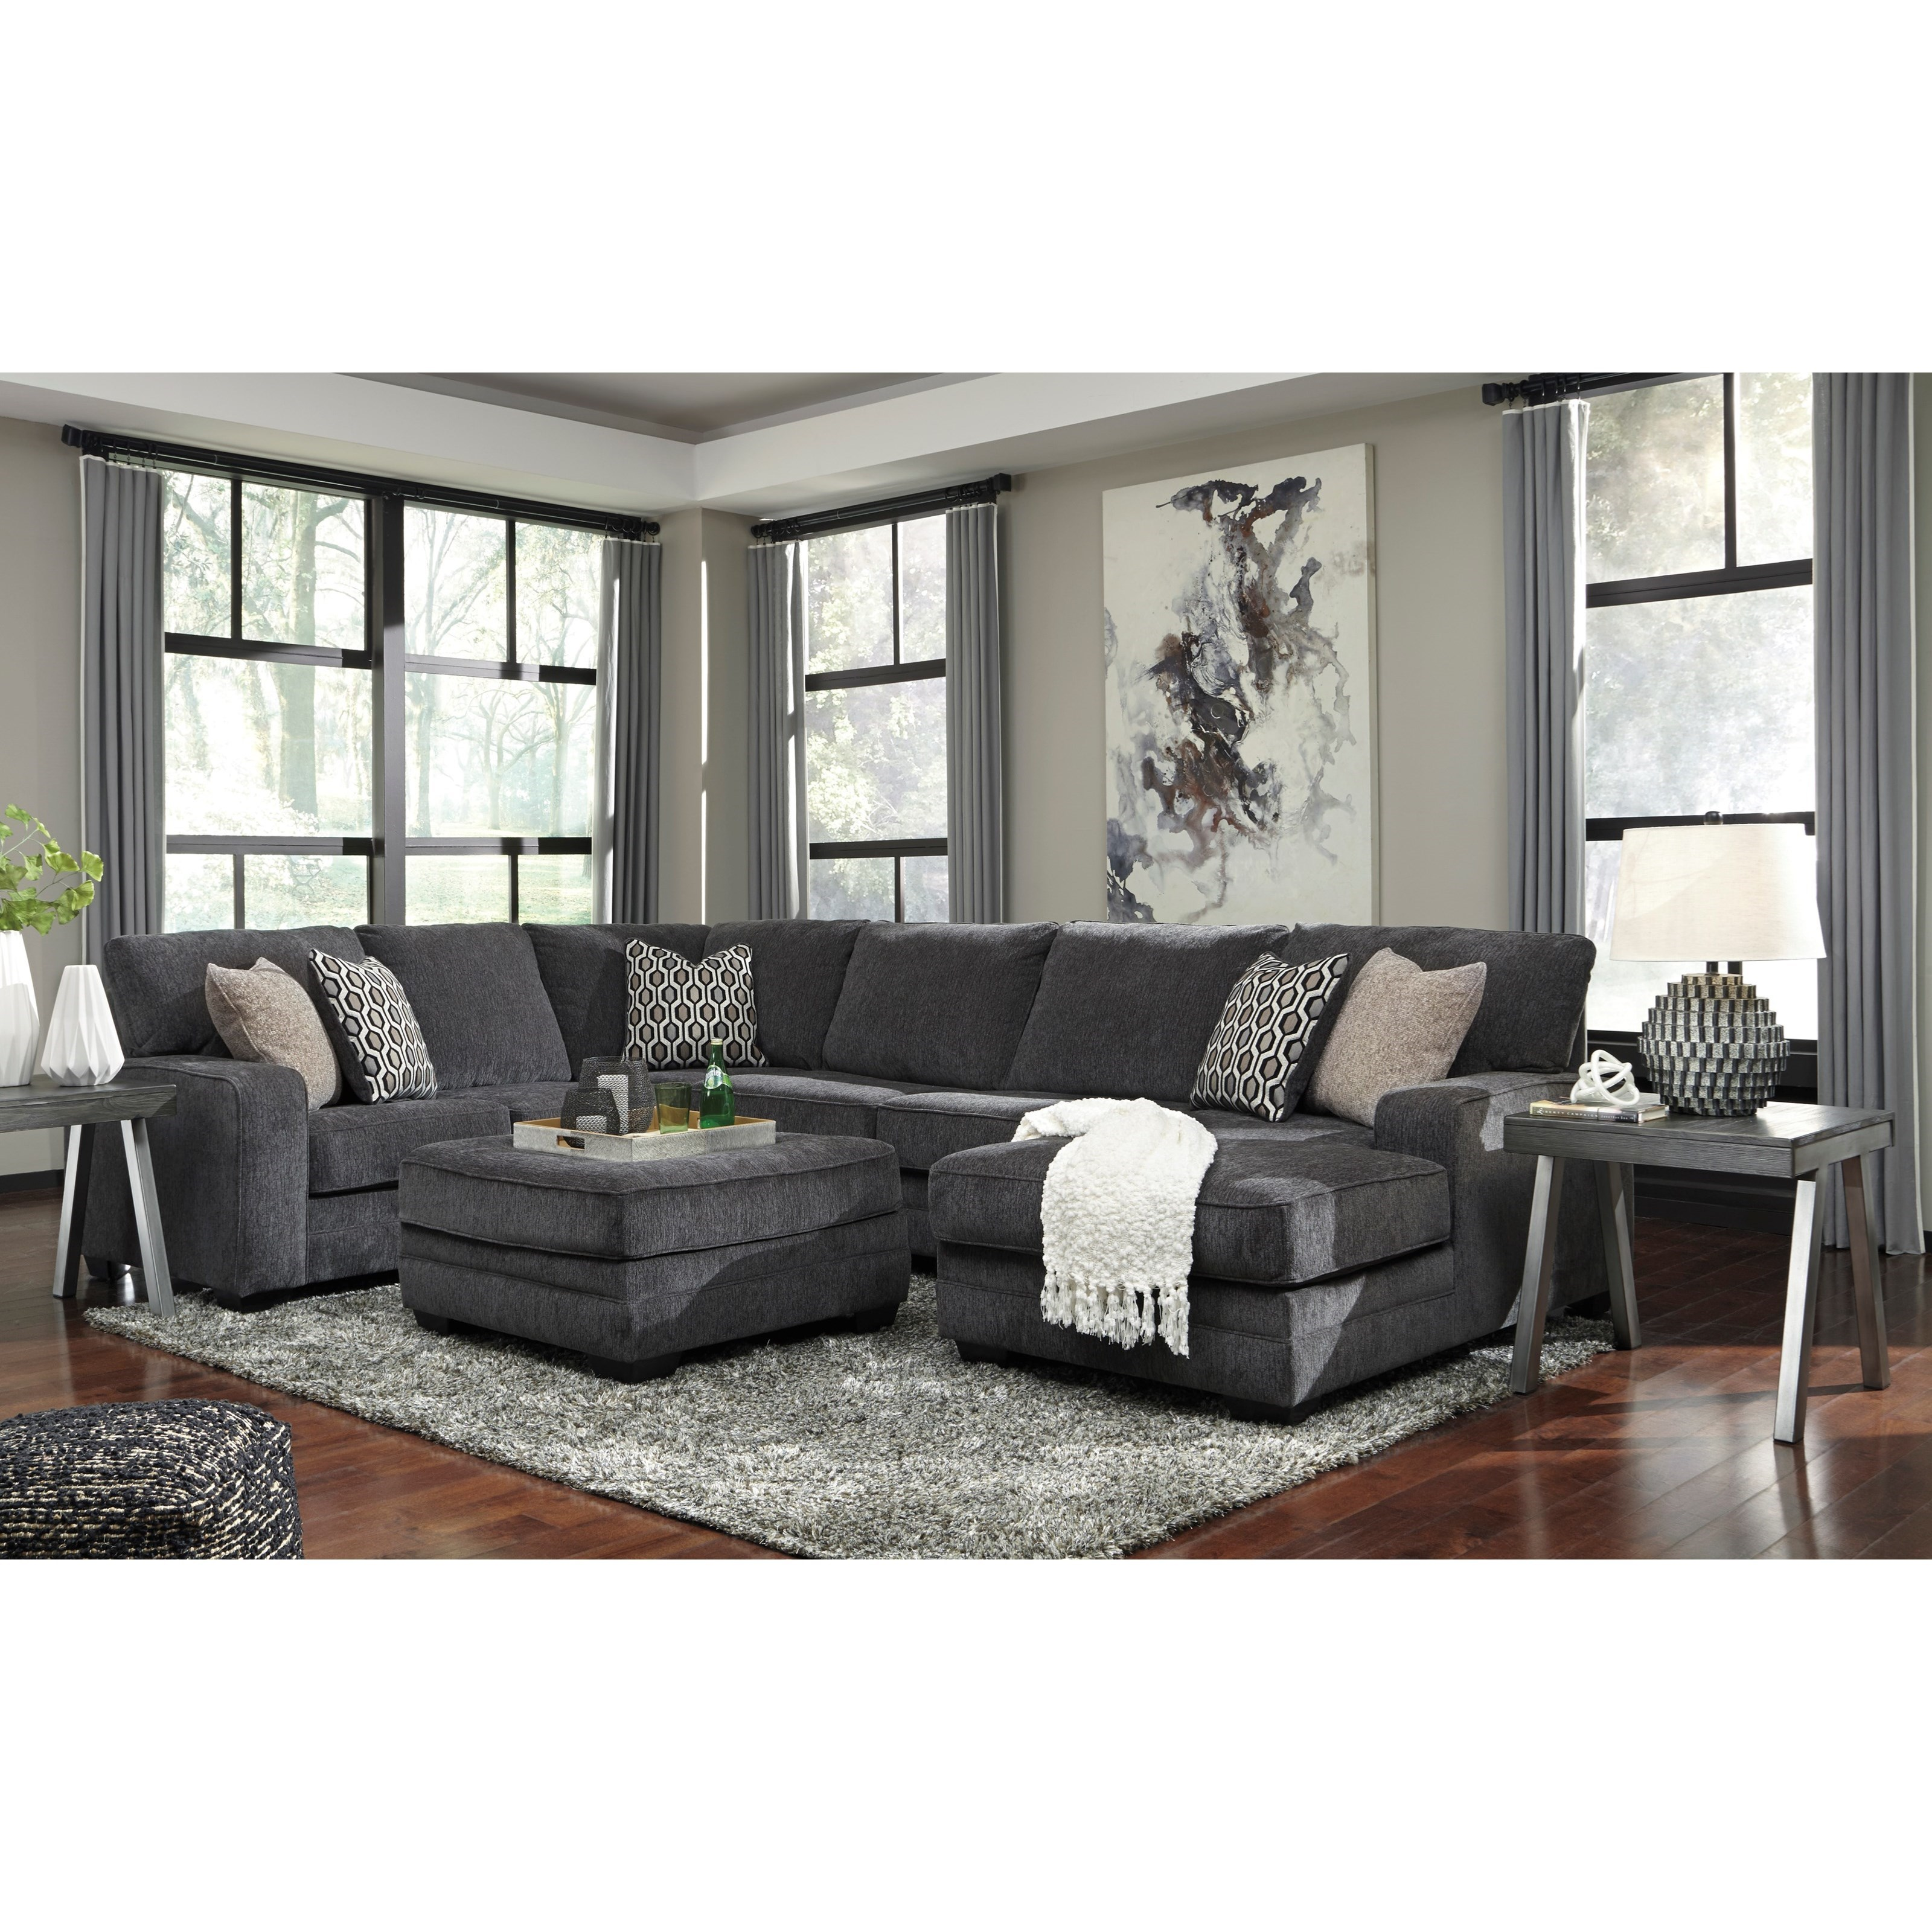 Tracling Stationary Living Room Group by Benchcraft at Northeast Factory Direct